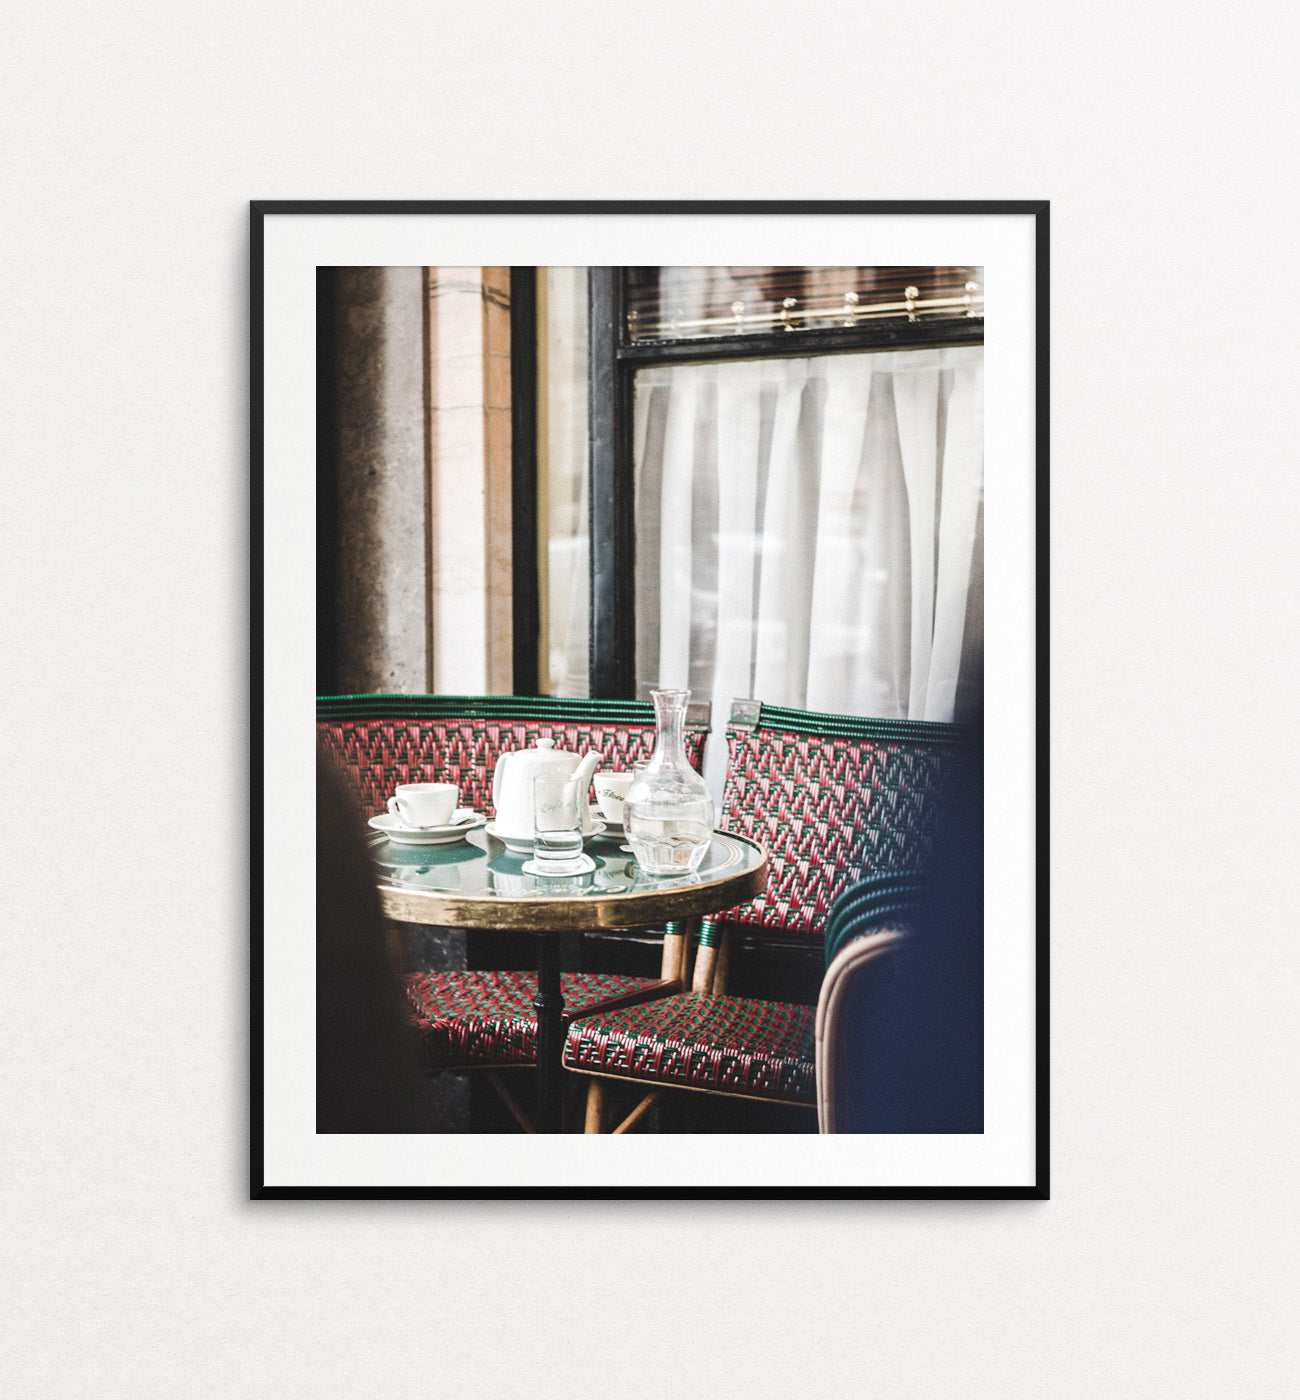 Invitation to Cafe de Flore